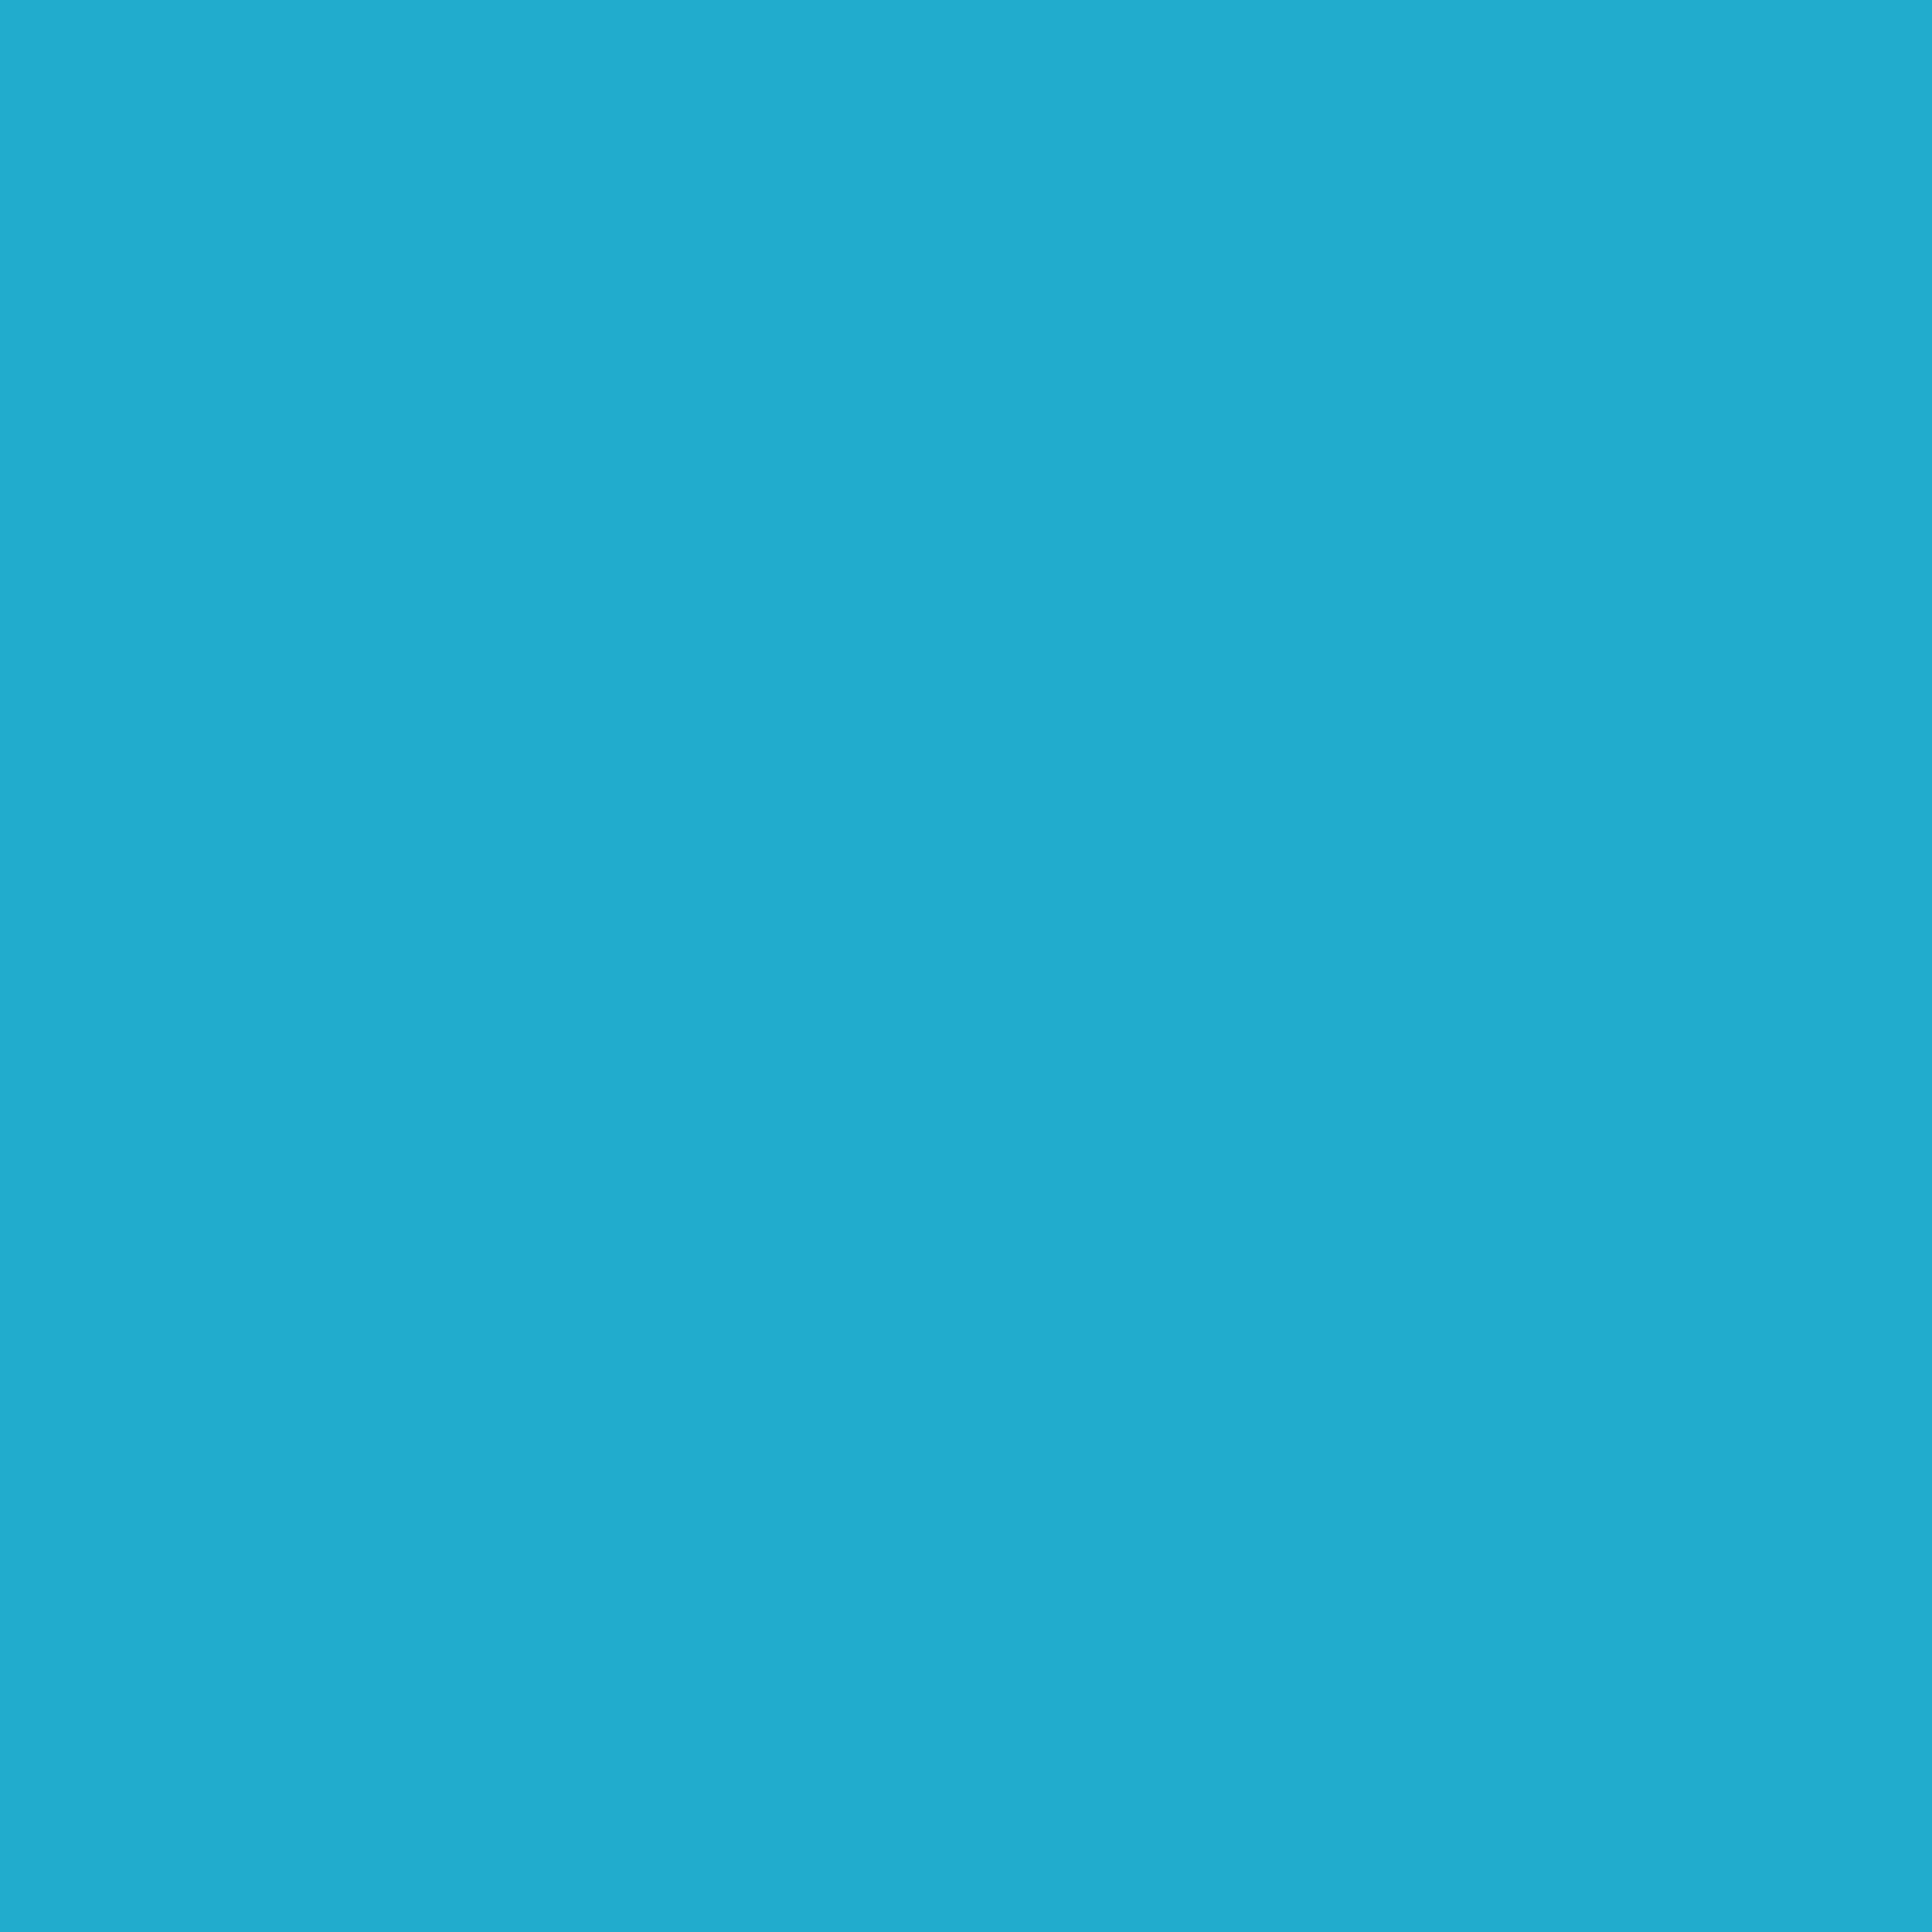 3600x3600 Ball Blue Solid Color Background